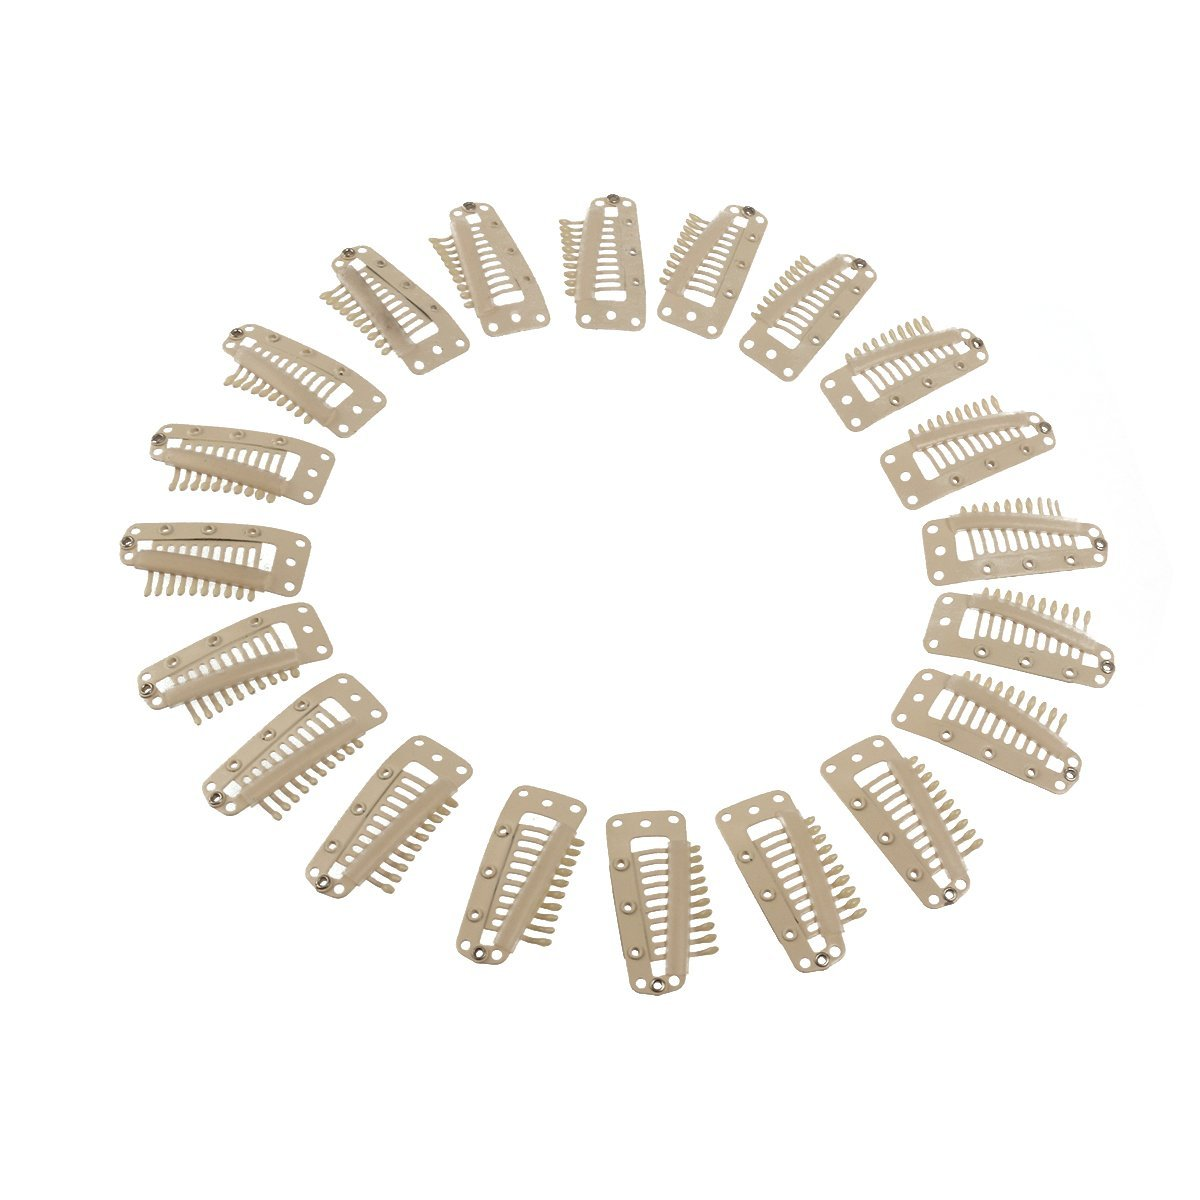 LEORX 20pcs 10-Teeth Snap Clips U-shape Metal Clipsfor Hair Extension (White)